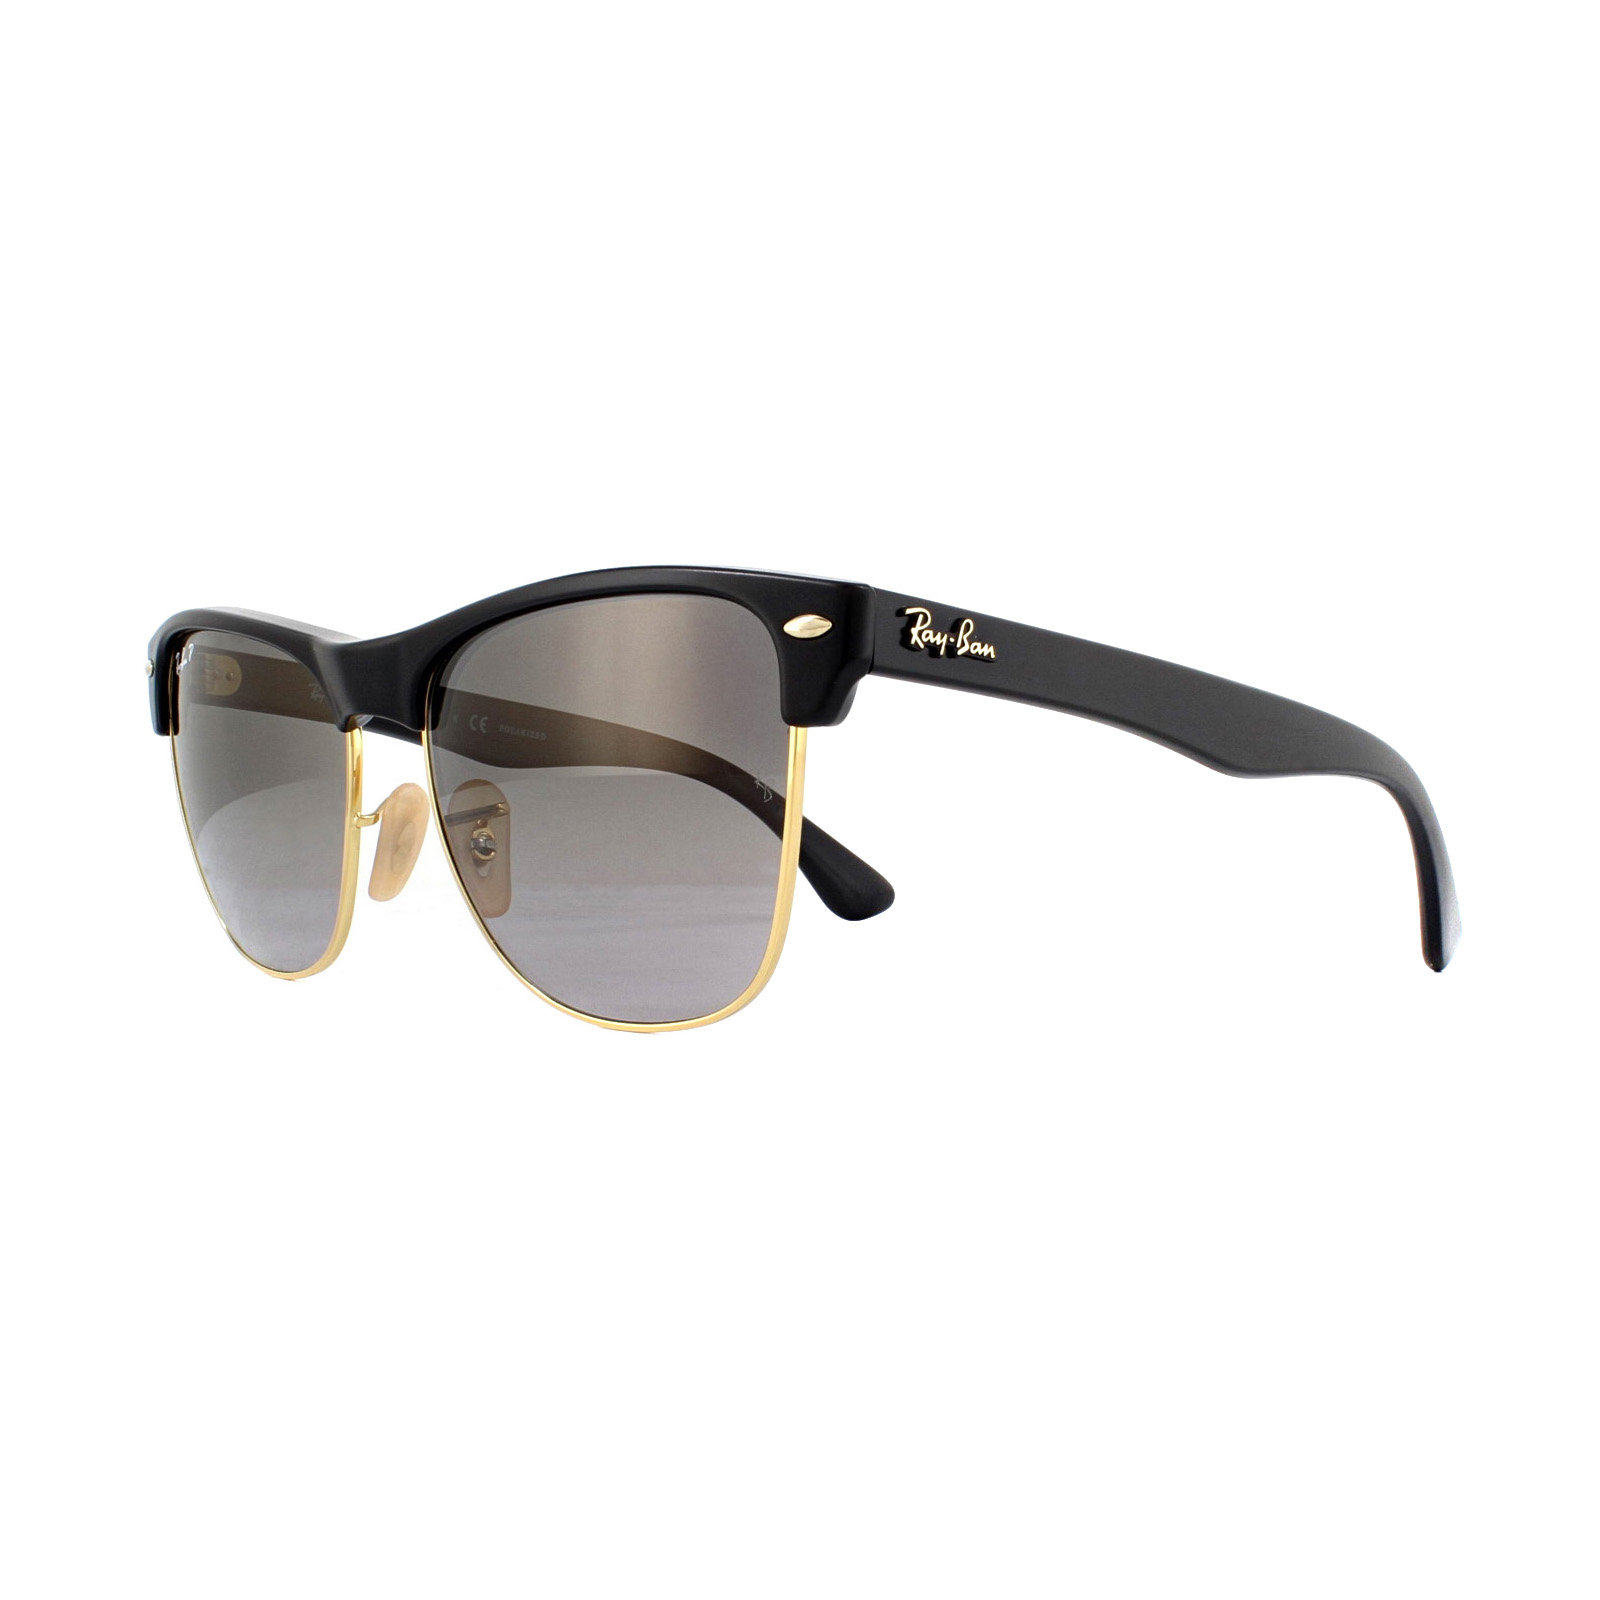 Sentinel Ray-Ban Sunglasses Clubmaster Oversized 4175 877 M3 Black Grey  Shaded Polarized d024d29f0527